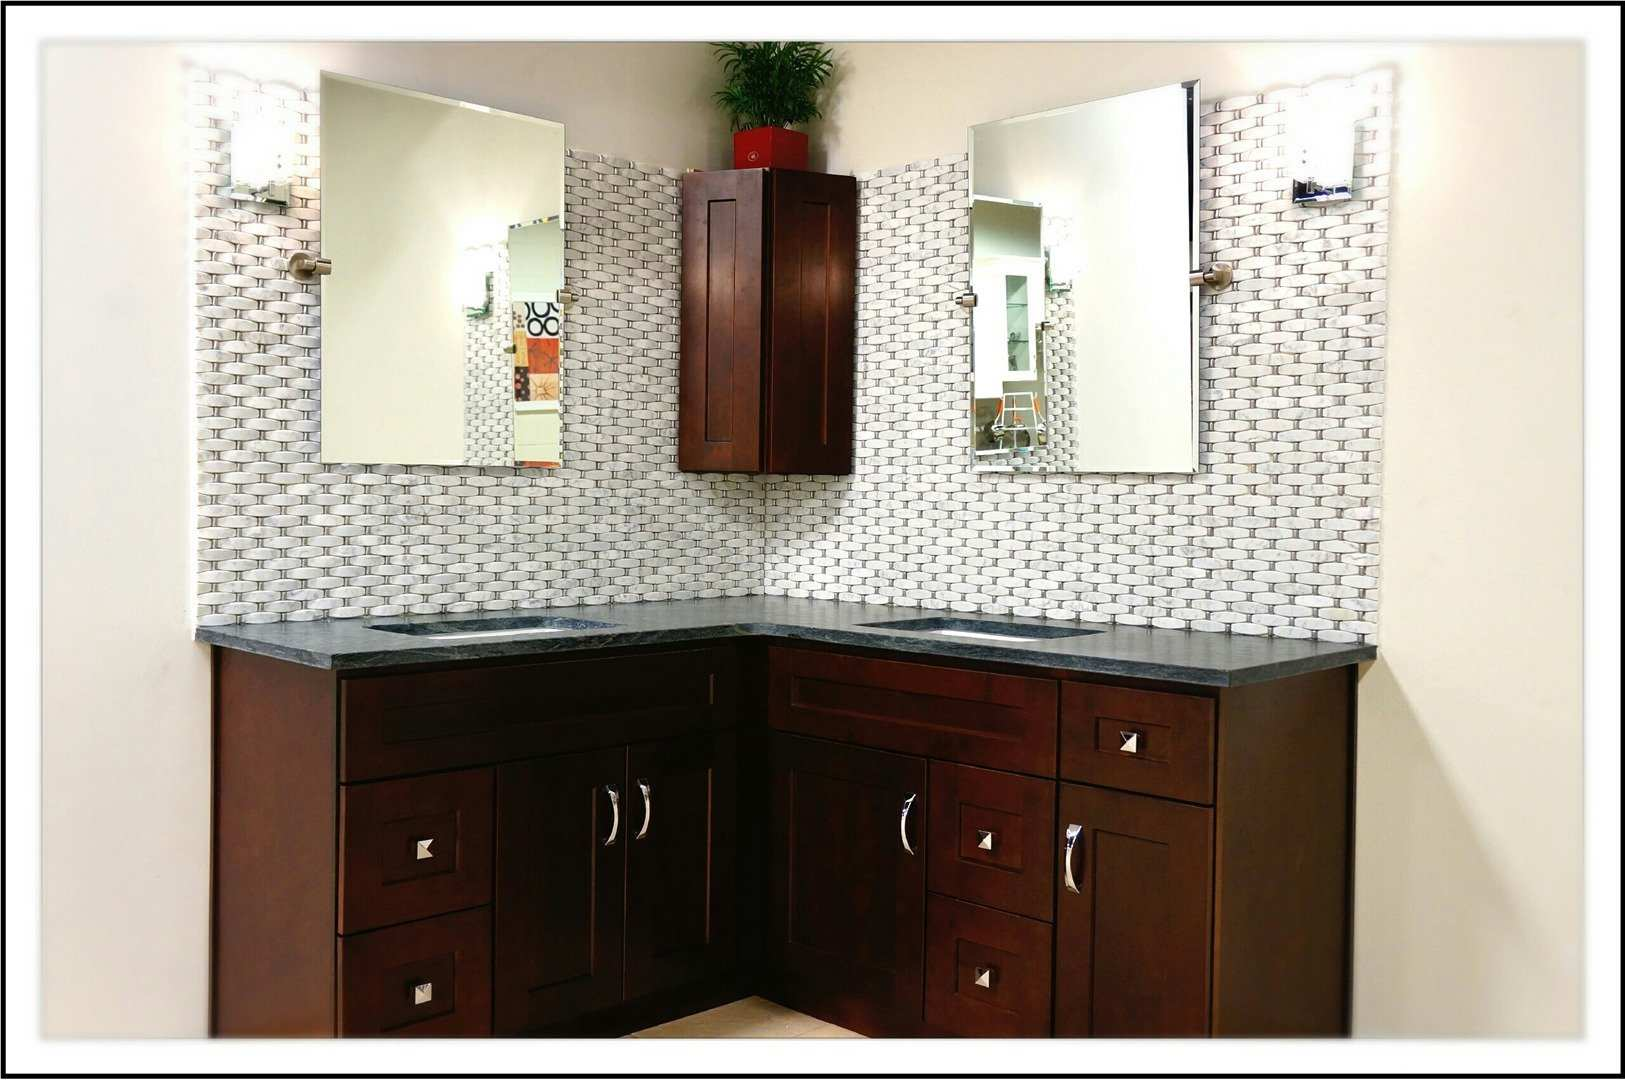 Columbus Bathroom Vanity wrapping around corner with 2 mirrors and 2 sinks